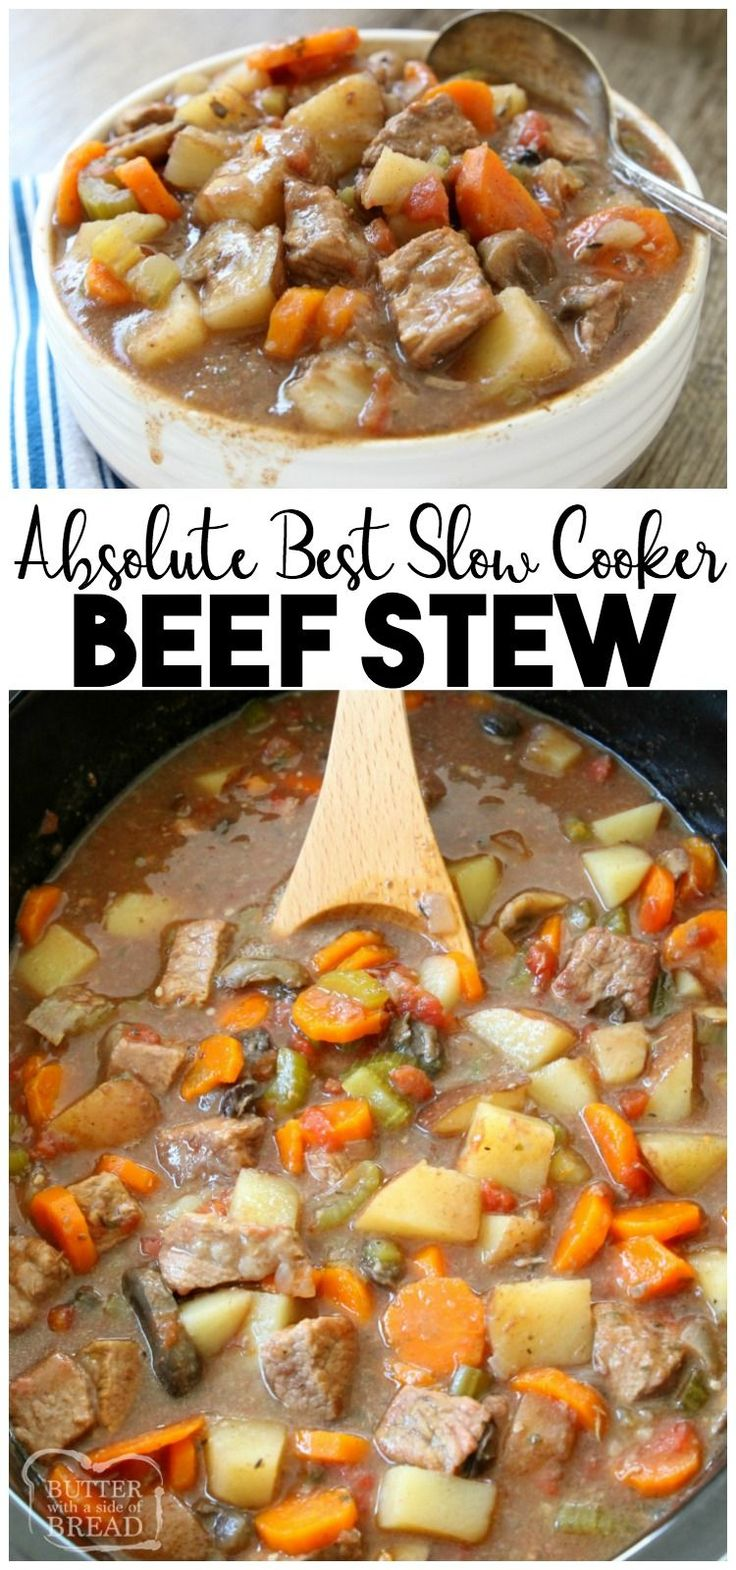 Slow Cooker Beef Stew made with tender chunks of beef, loads of vegetables and a simple mixture of broth and spices that yields the BEST, easiest beef stew ever!